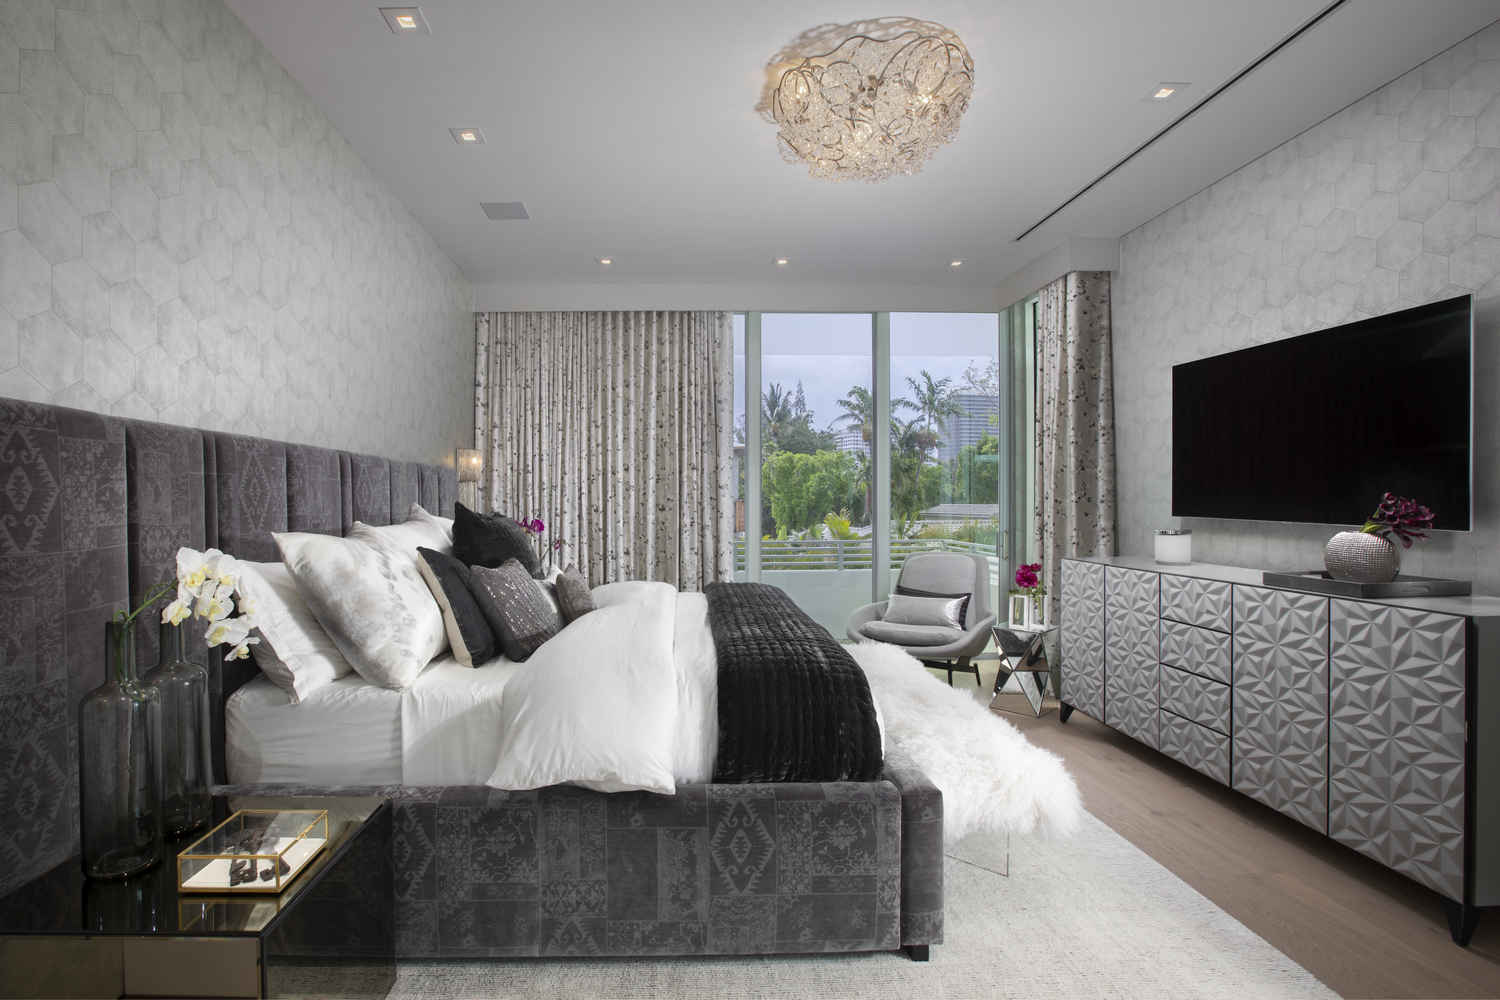 Home Design Bedroom Interior Design Bal Harbour Modern Wonderland Home Dkor Interiors